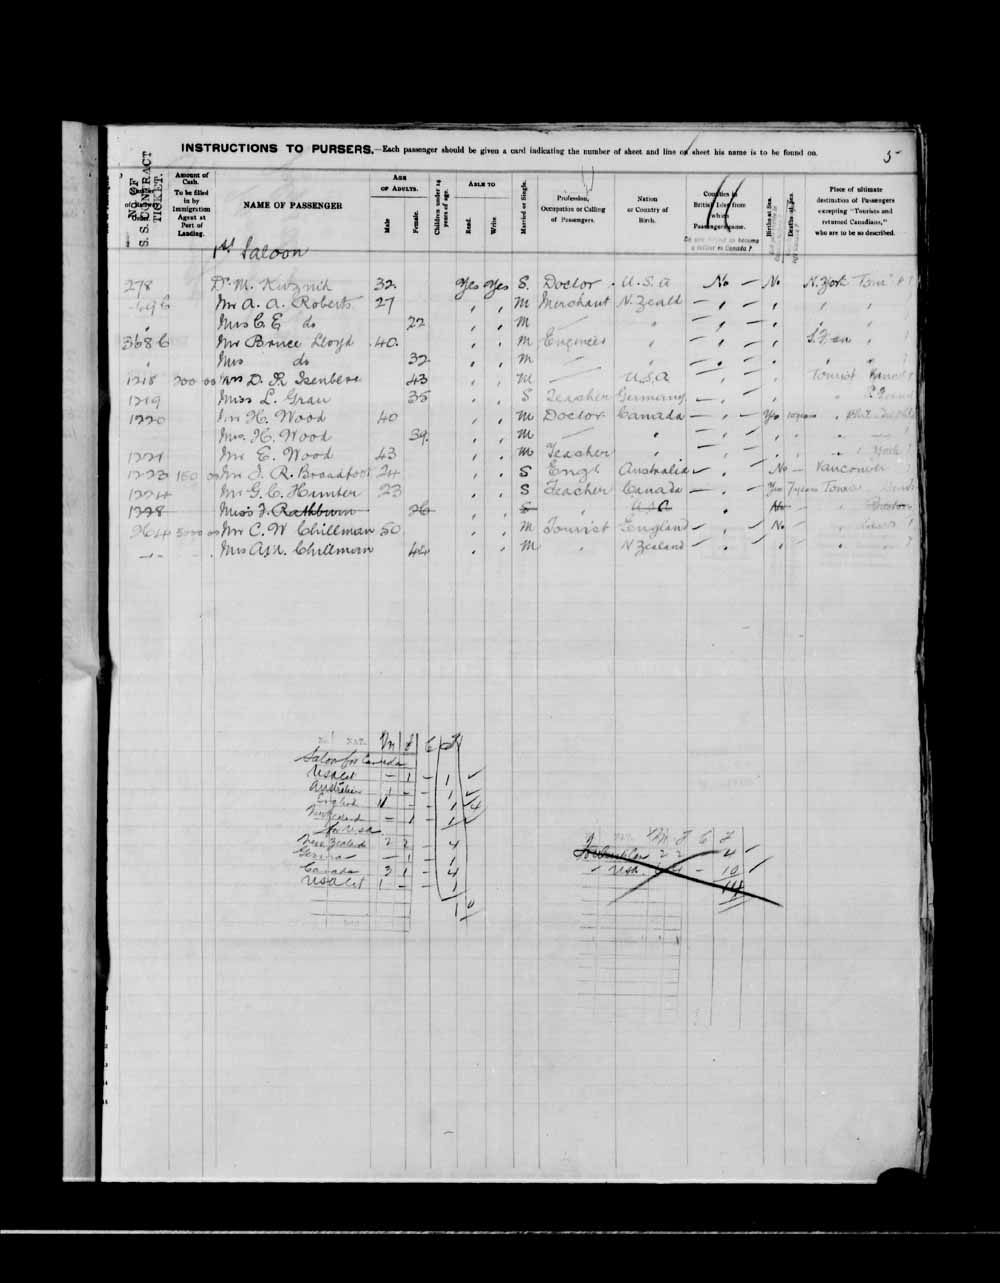 Digitized page of Passenger Lists for Image No.: e003635033